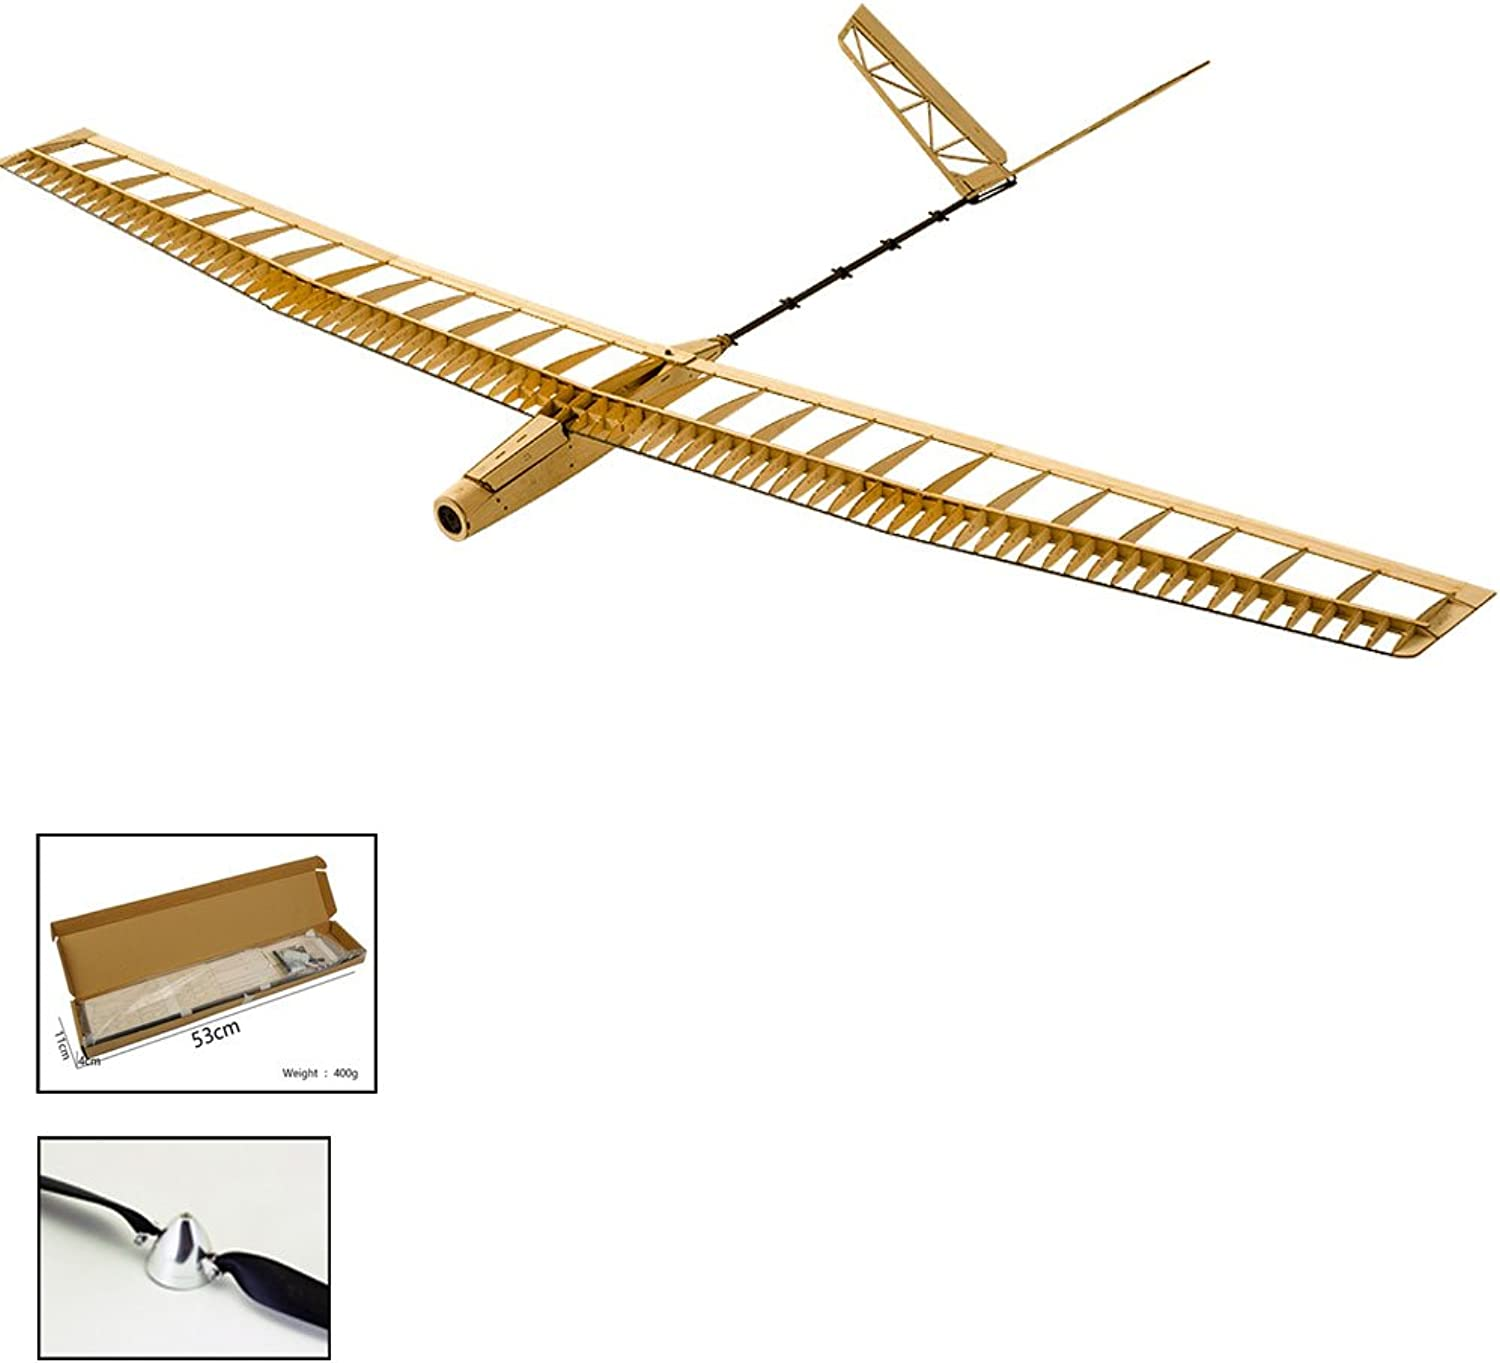 Dancing Wings Hobby RC Glider Balsa Wood Model Plane Kit, 1.4M Laser Cut UZI Airplane Model, 3CH RC Electric Remote Control Aeroplane Model Building Kits for Adults (F1401C)